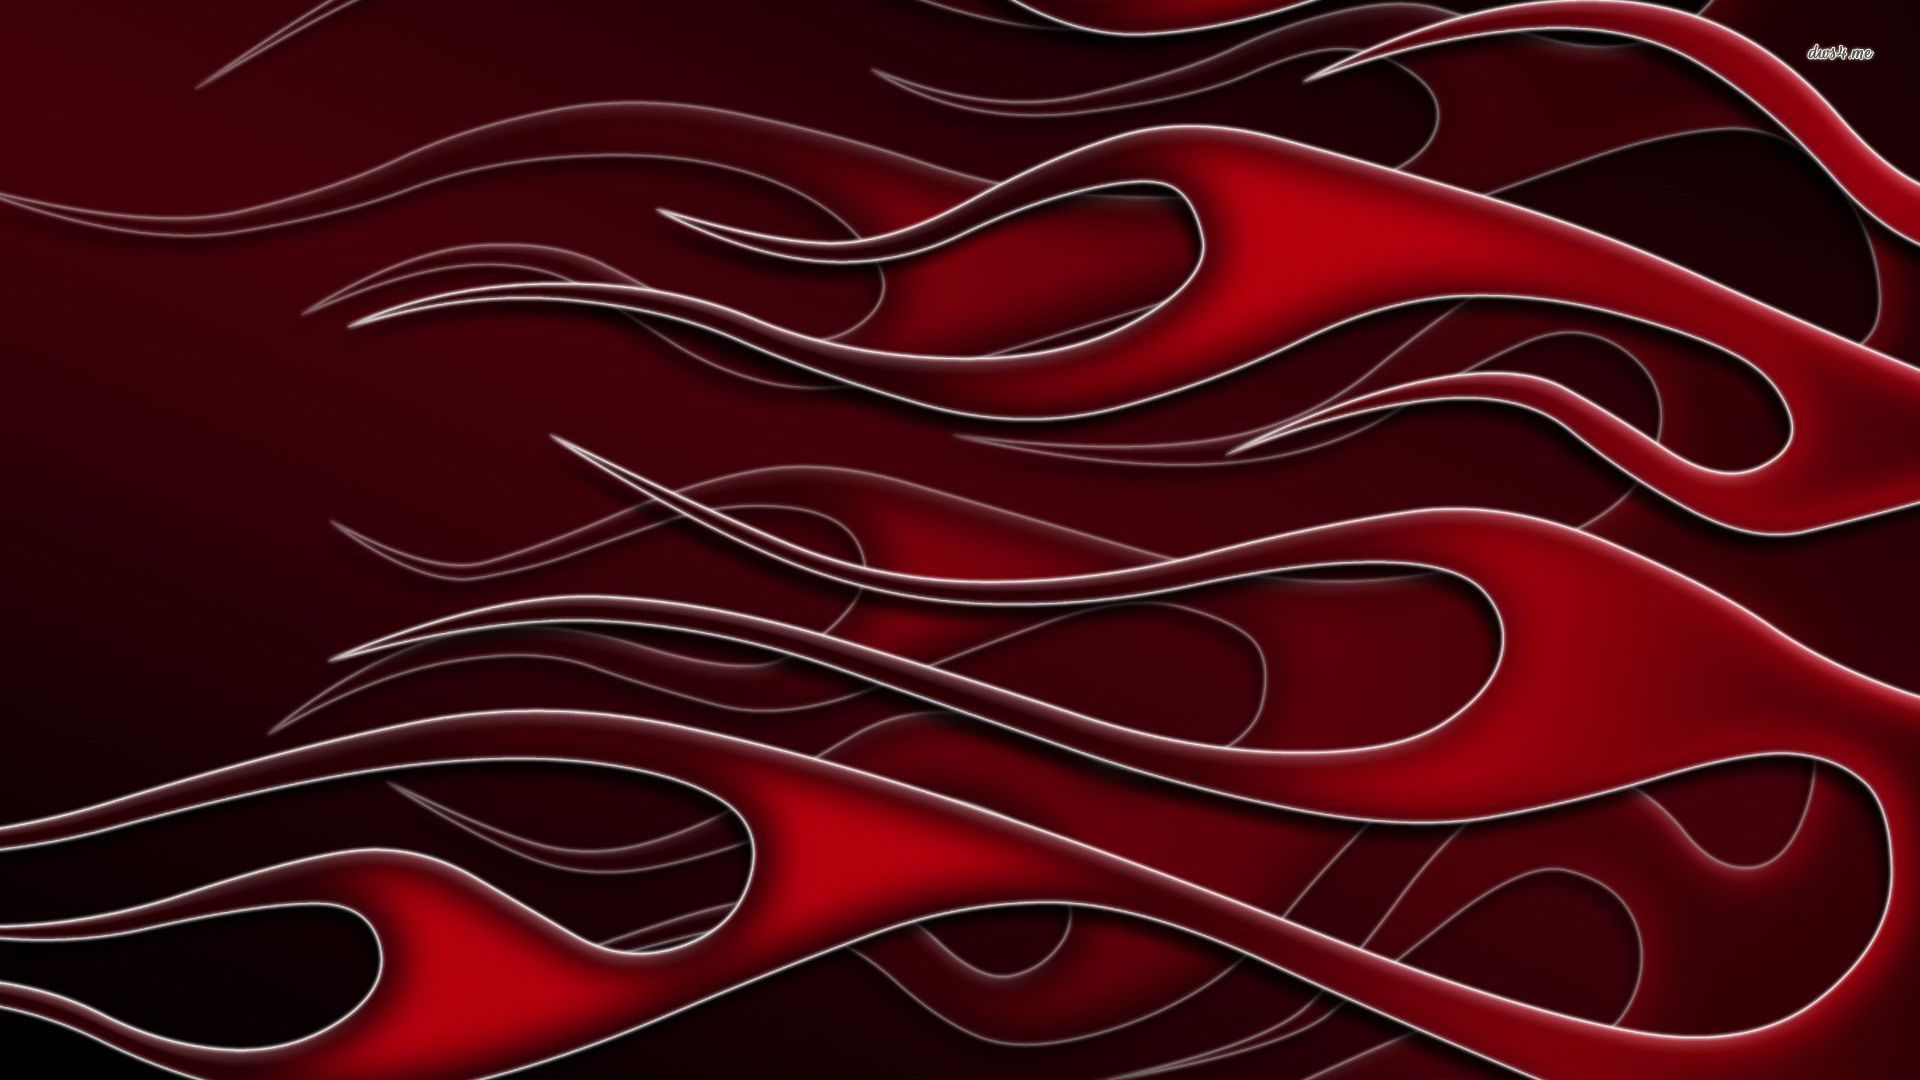 flames wallpaper 30737 hd wallpapers background